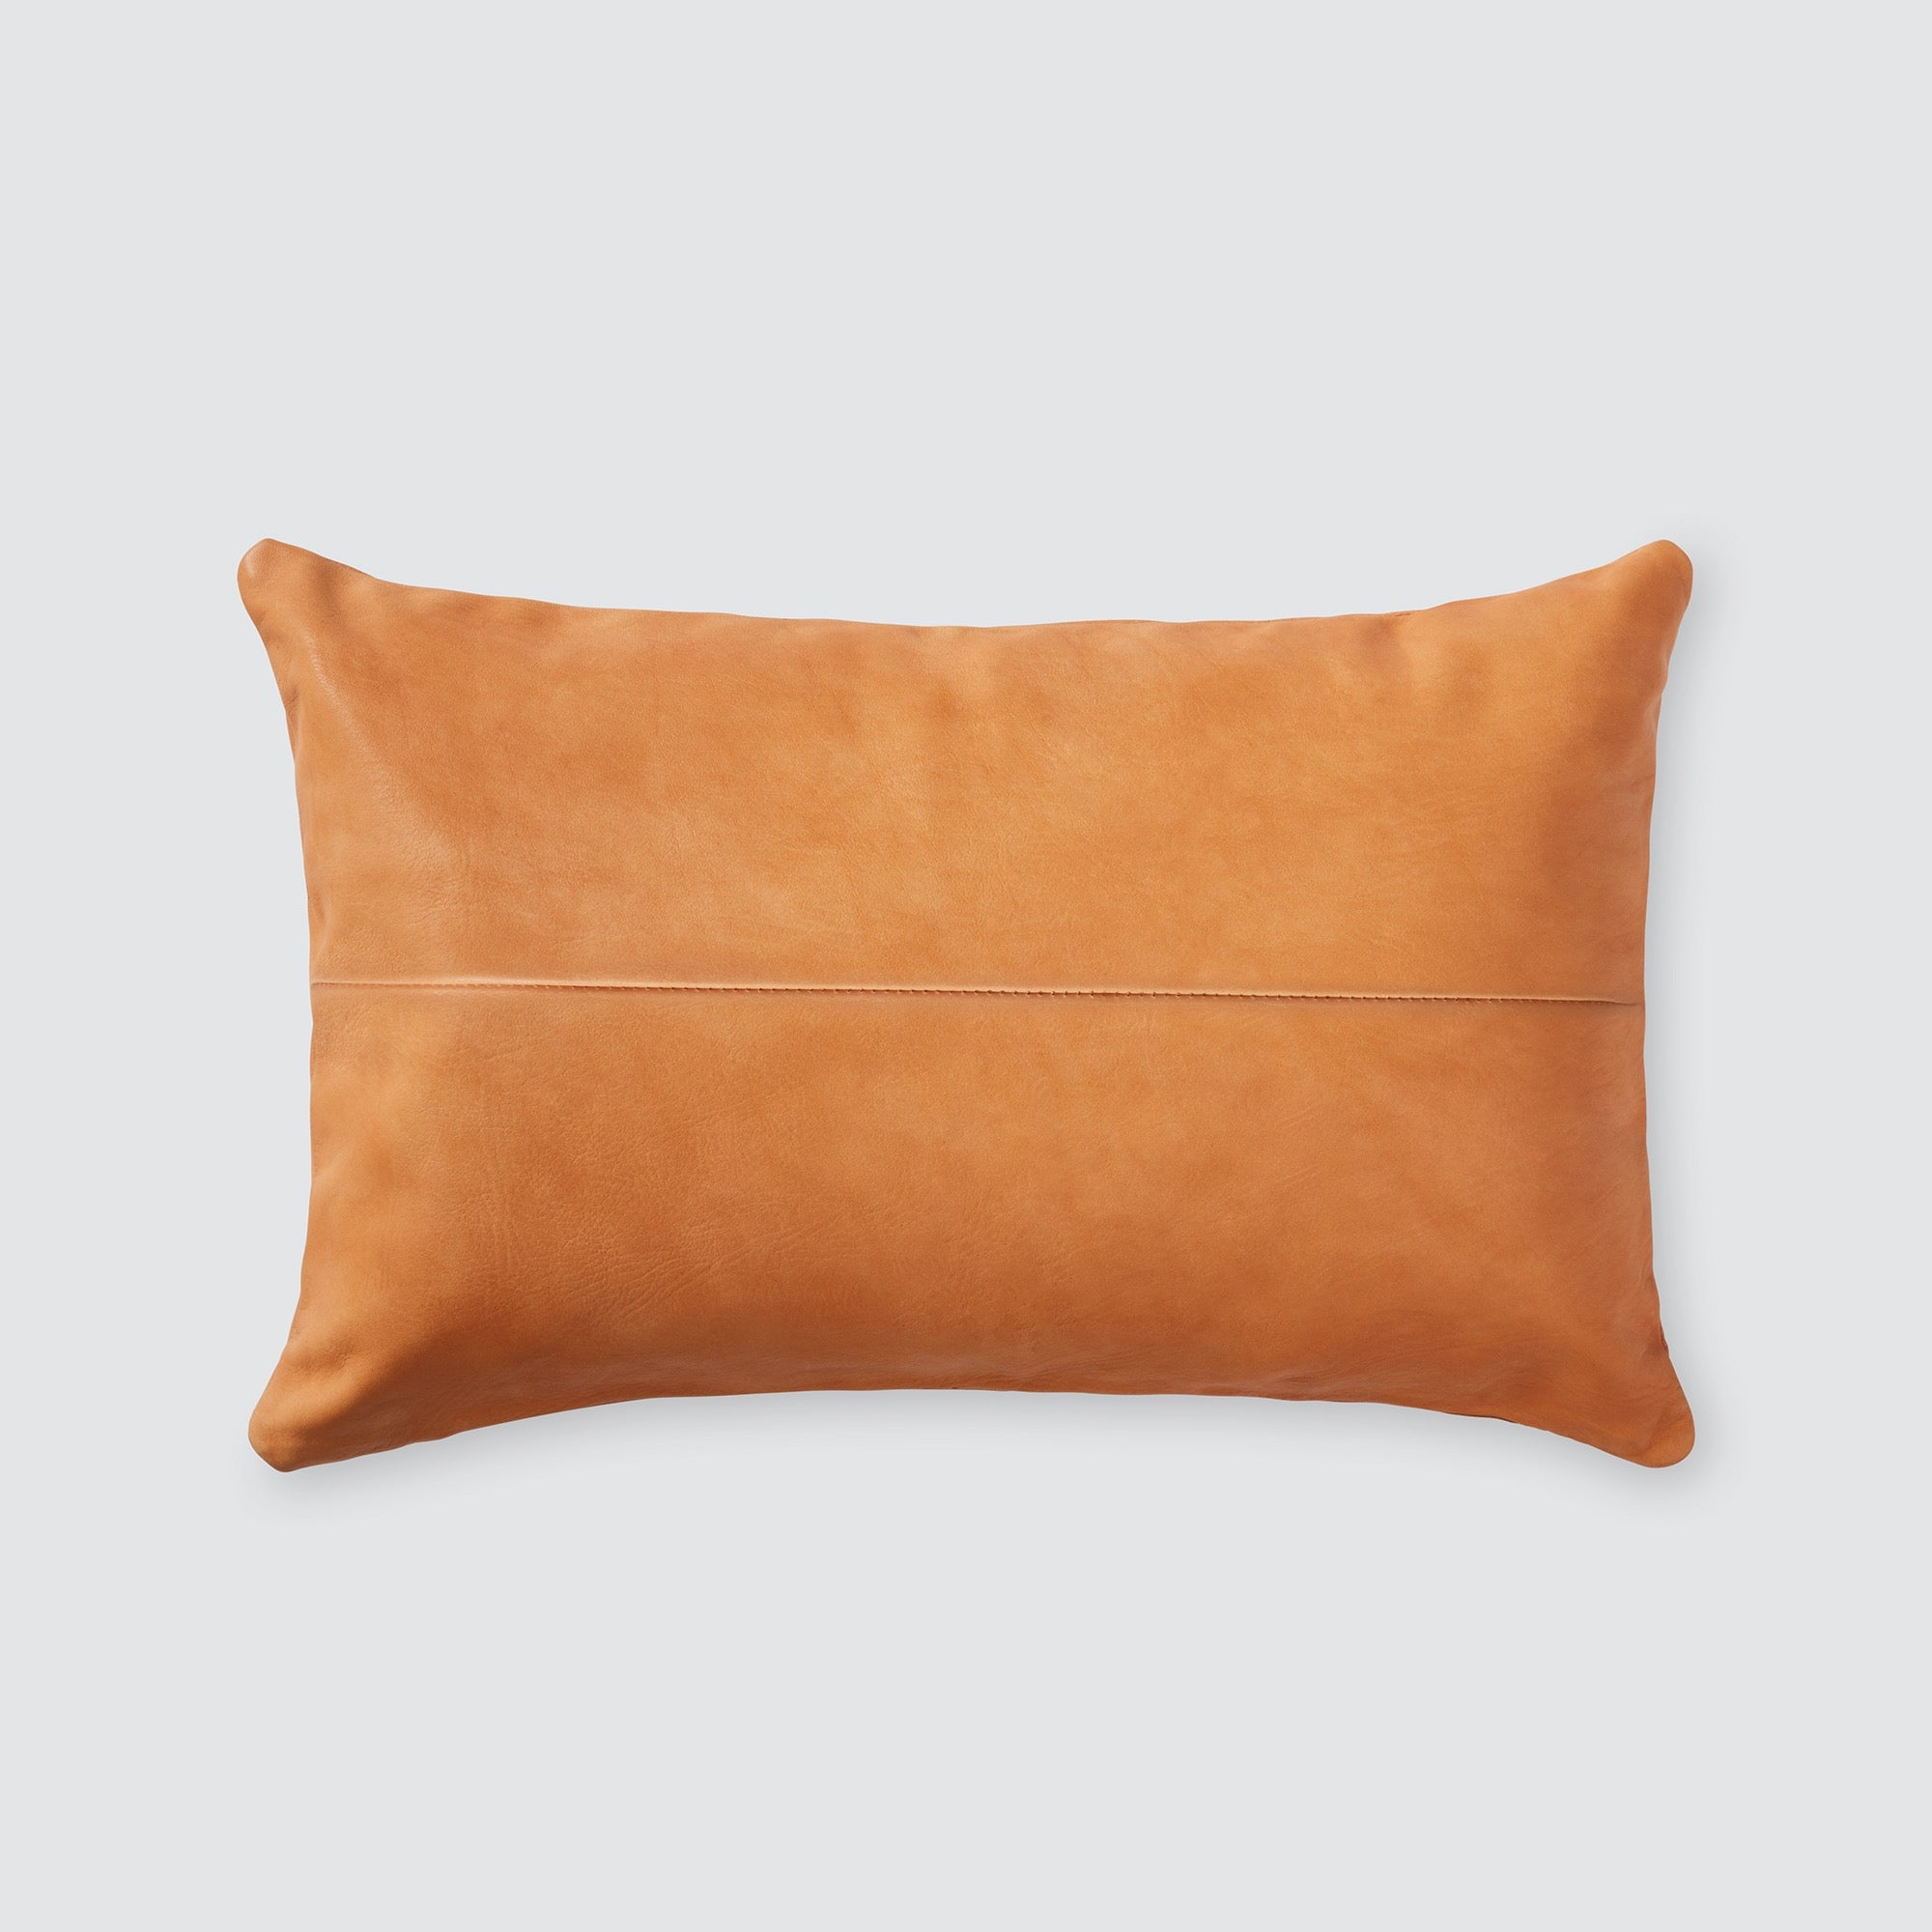 Leather Lumbar Pillow Handcrafted In Argentina The Citizenry